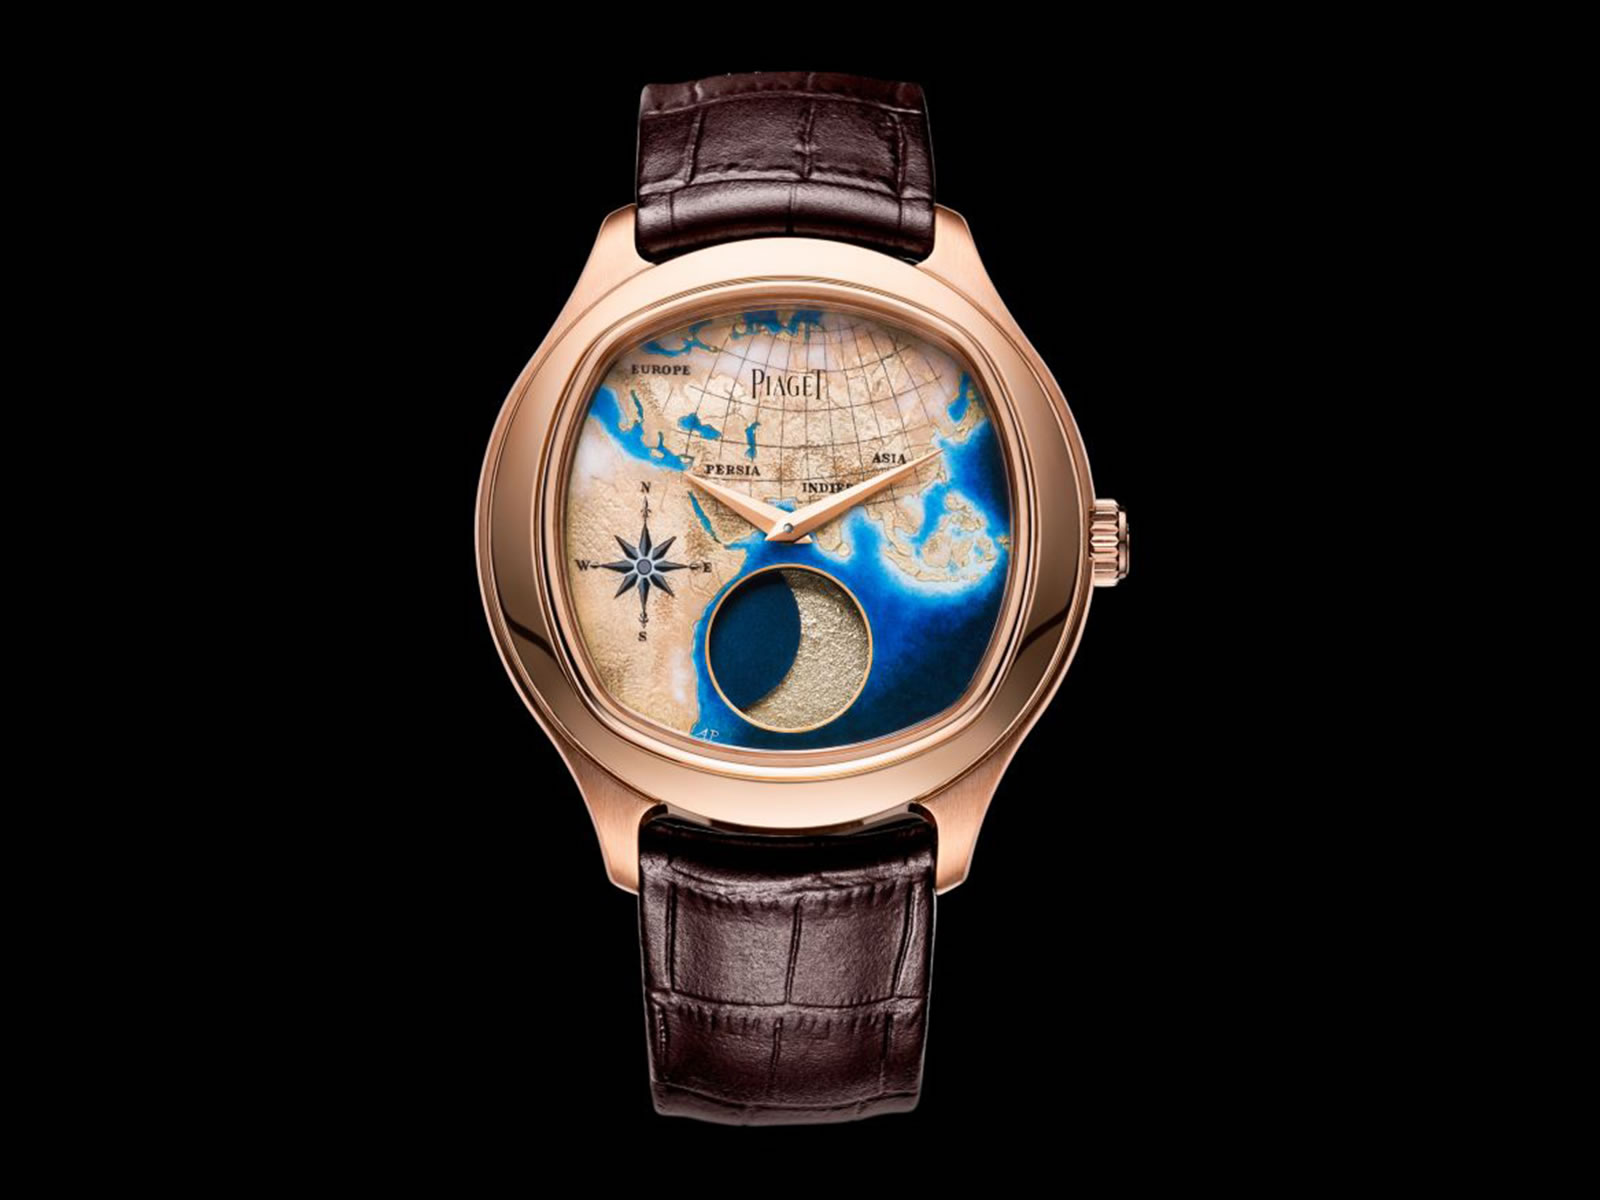 piaget-at-watches-wonders-2015-1.jpg